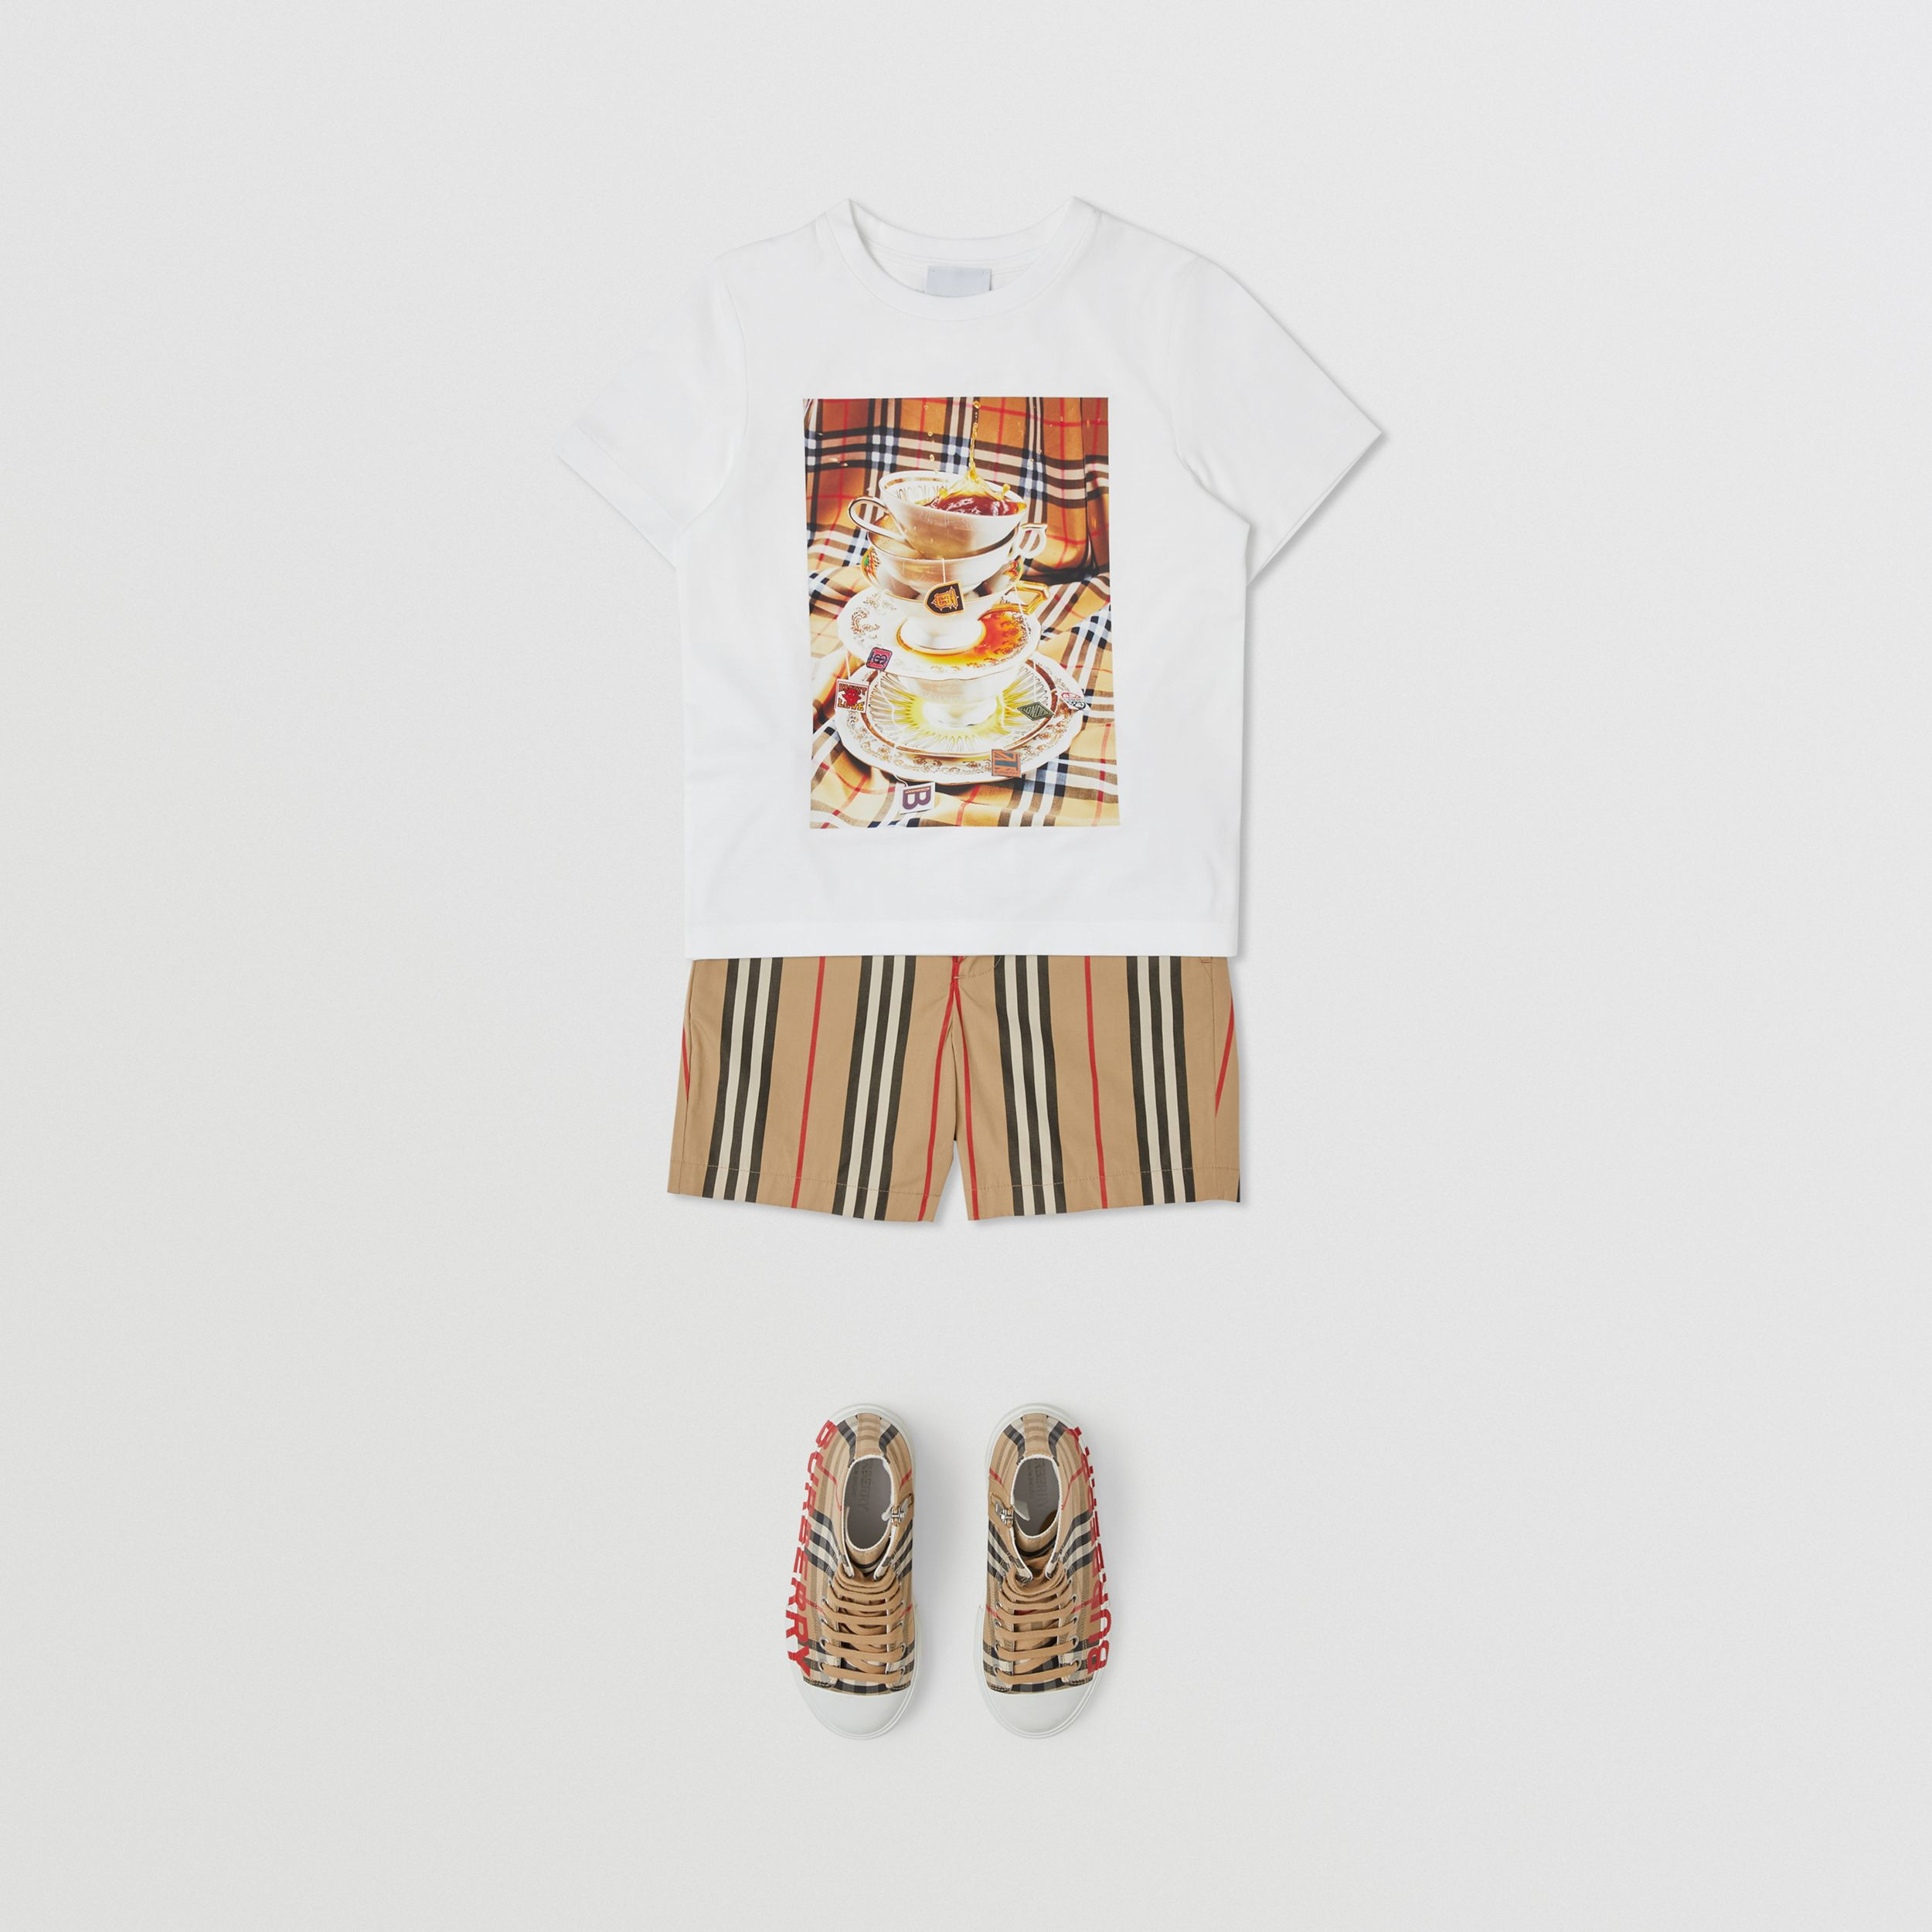 Teacup Print T-shirt in Multicolour | Burberry - 4